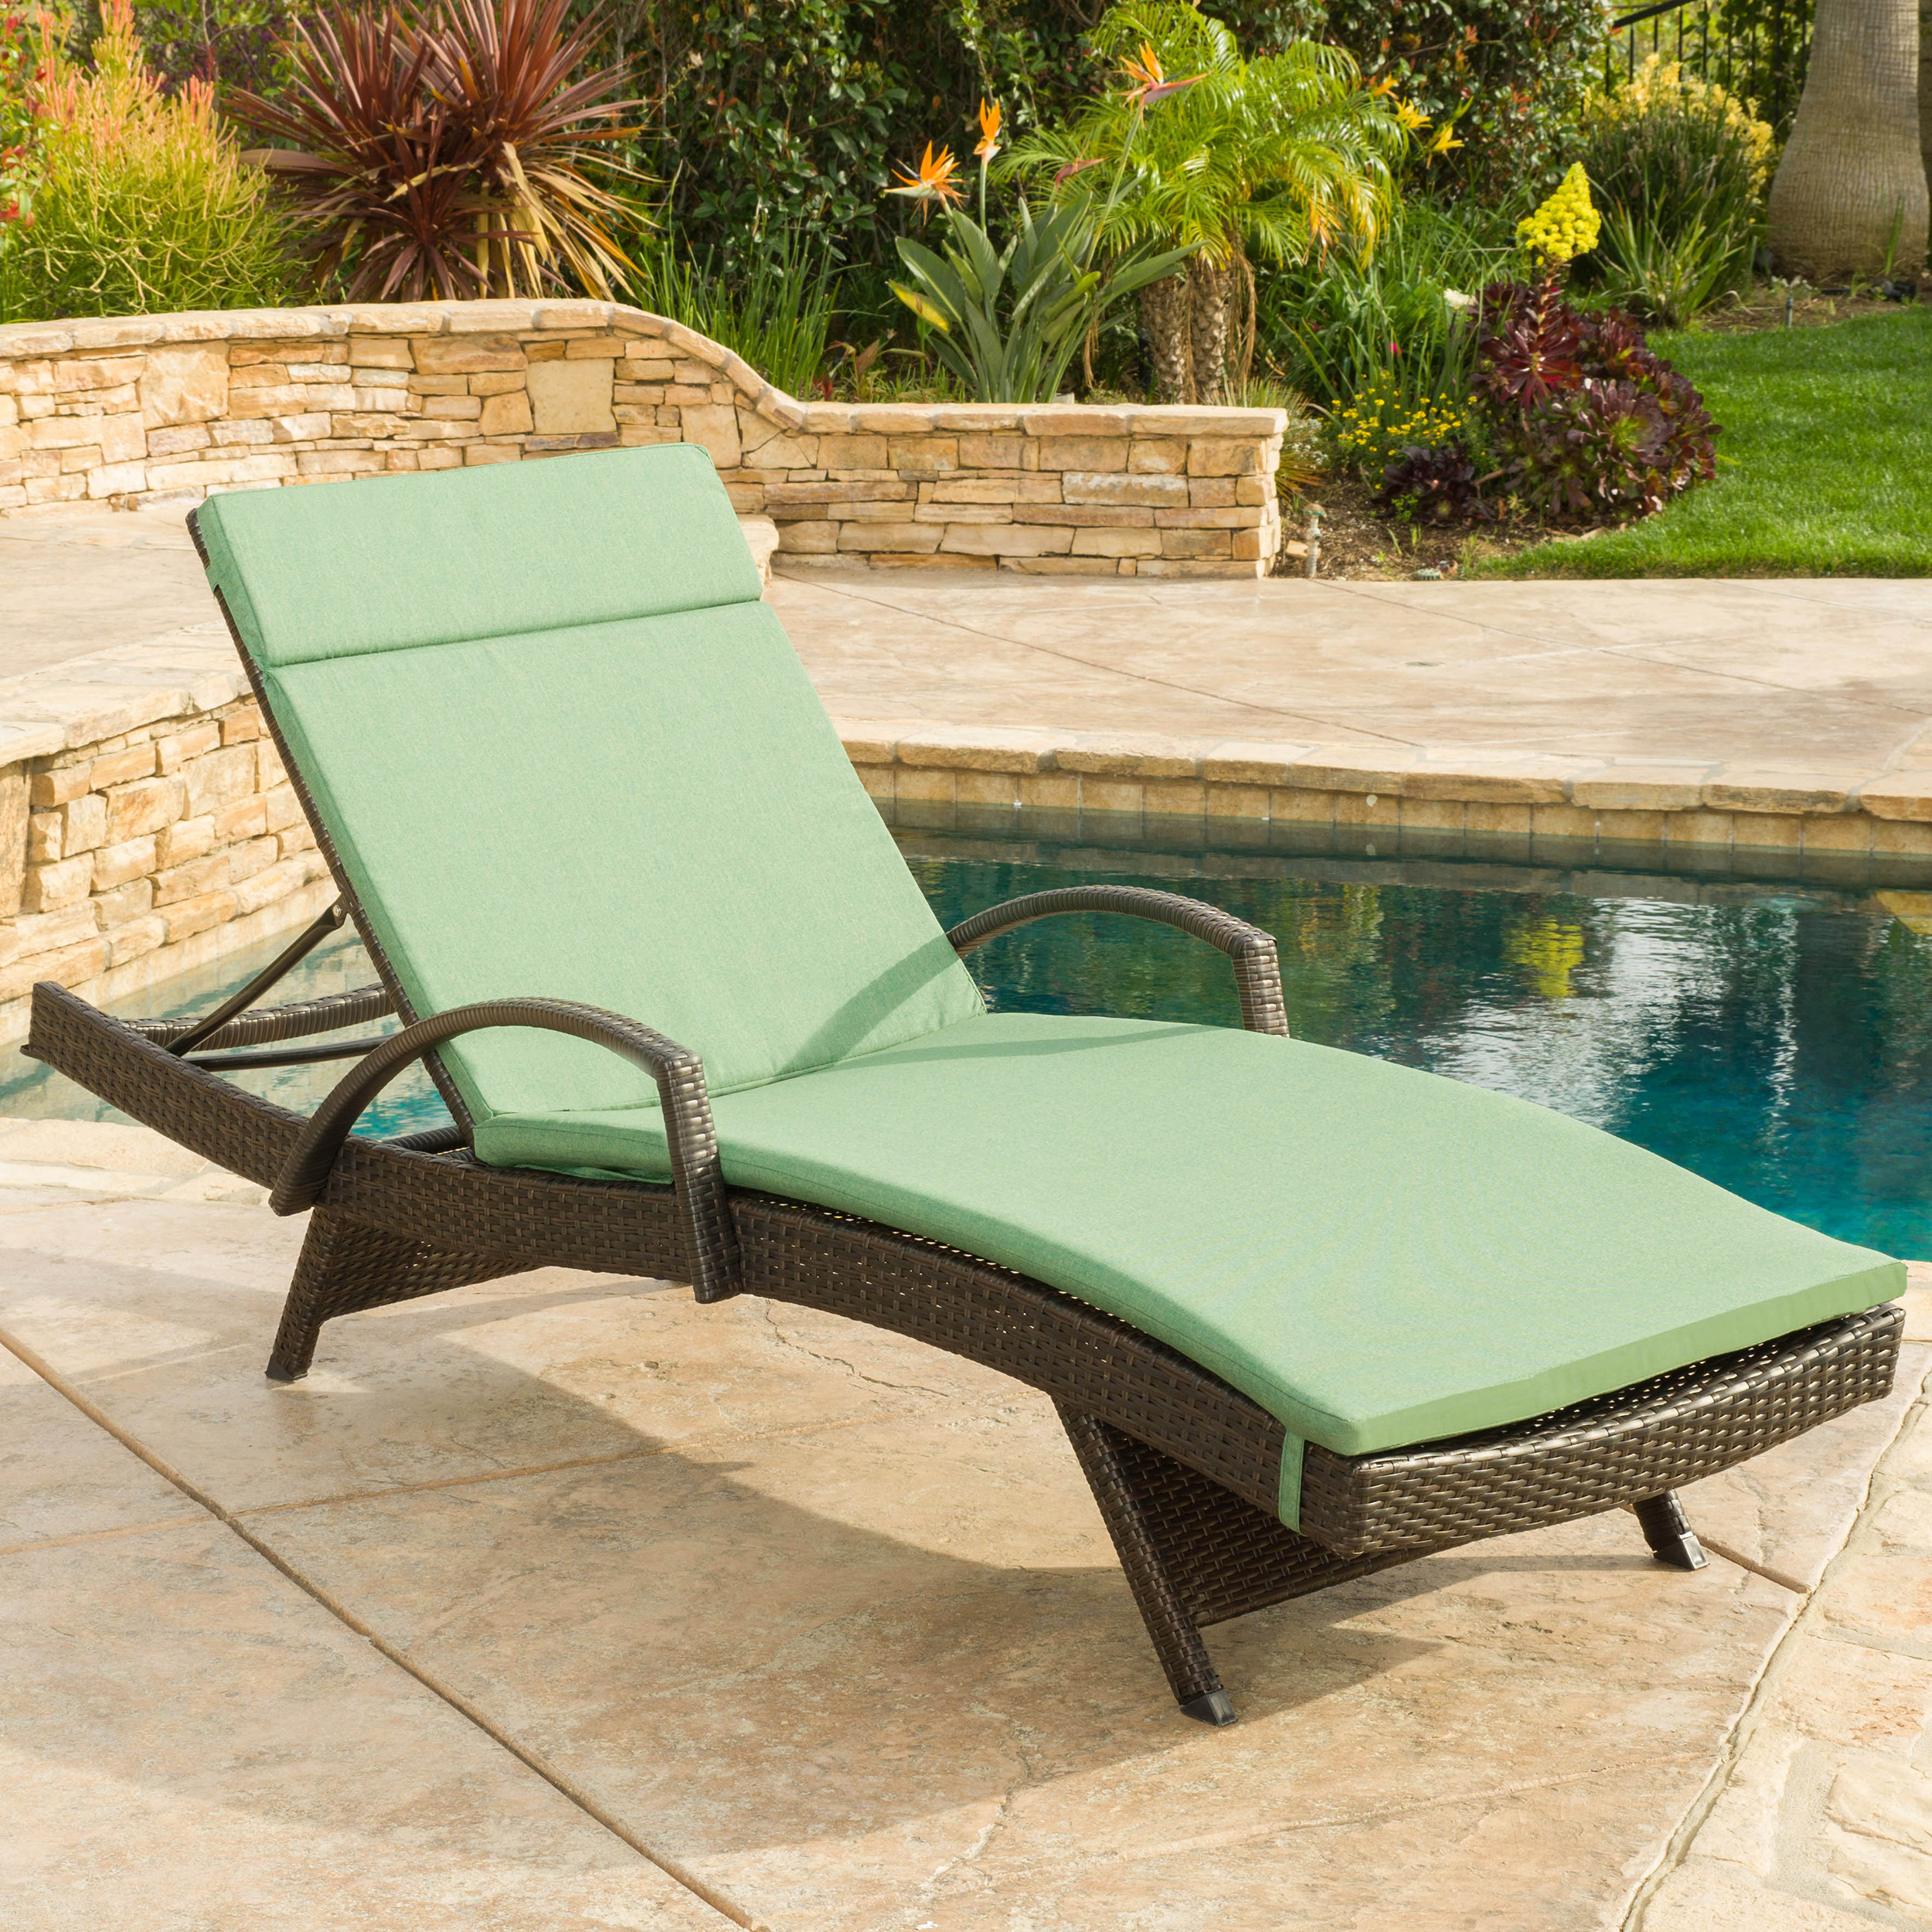 Stratford Outdoor Wicker Adjustable Armed Chaise Lounge with Cushion, Multiple Colors